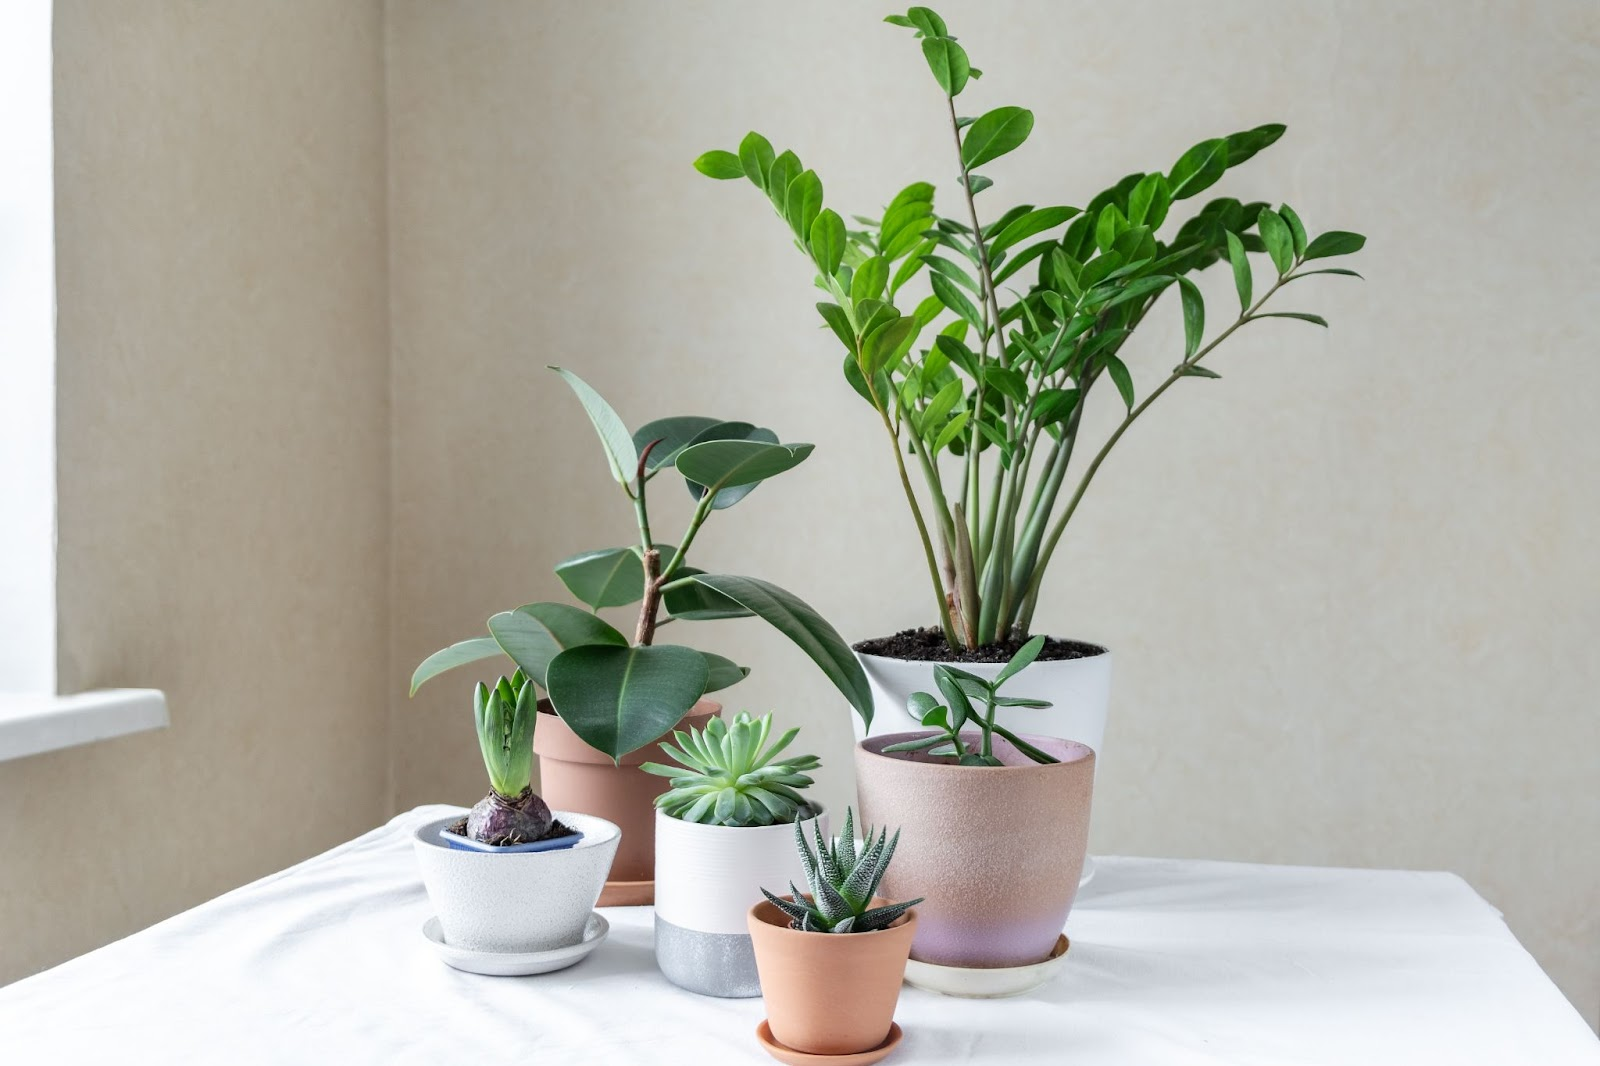 Image of varying sizes of pots and plants sitting on a white table.